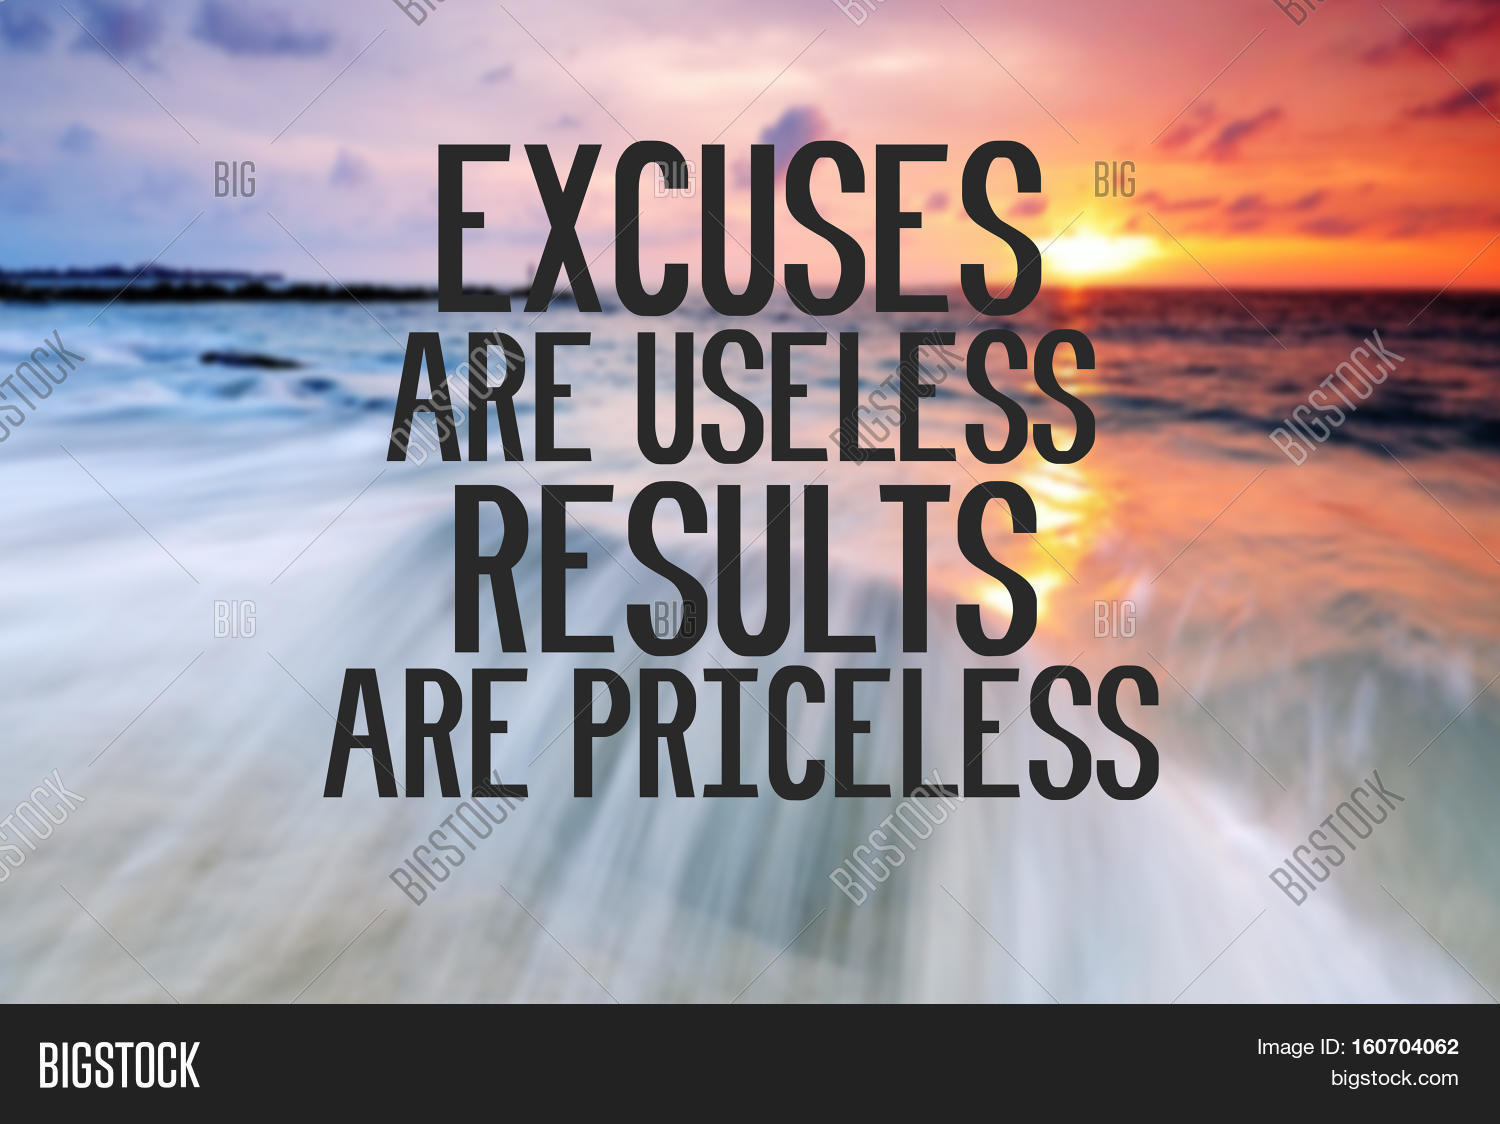 1cc6d201583a Inspirational and motivational quote with phrase Excuses are useless results  are priceless blurry sunset background